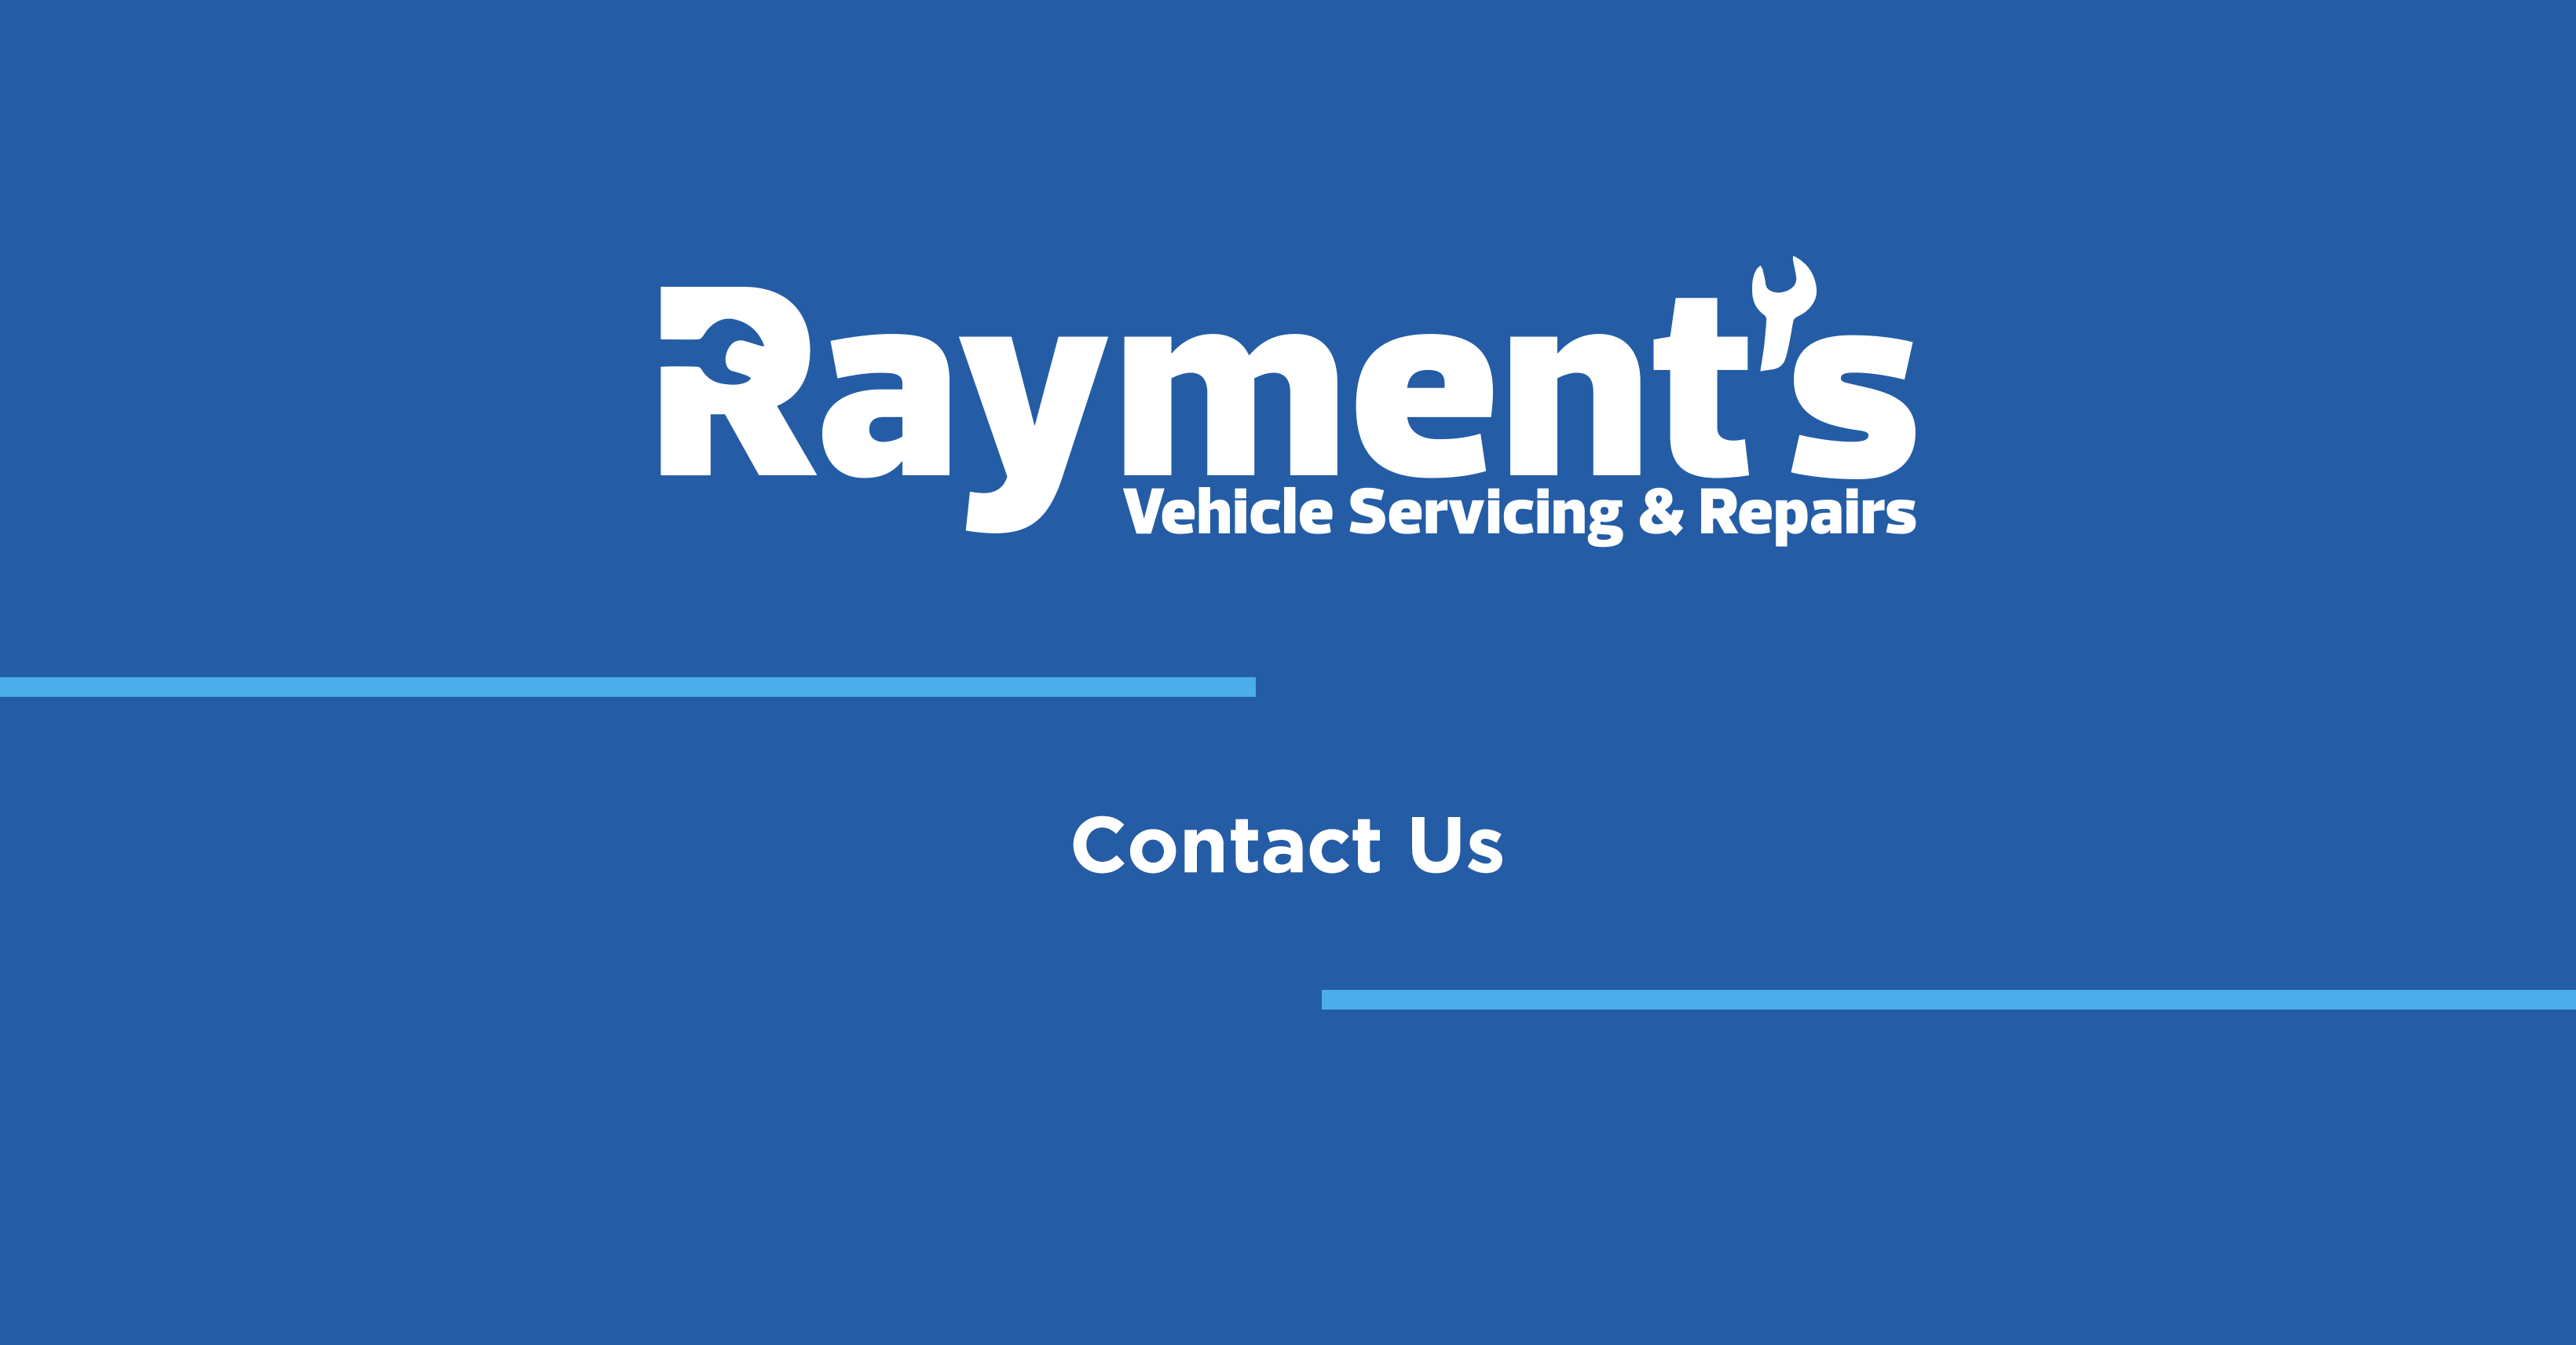 Contact Rayment's Vehicle Servicing and Repairs